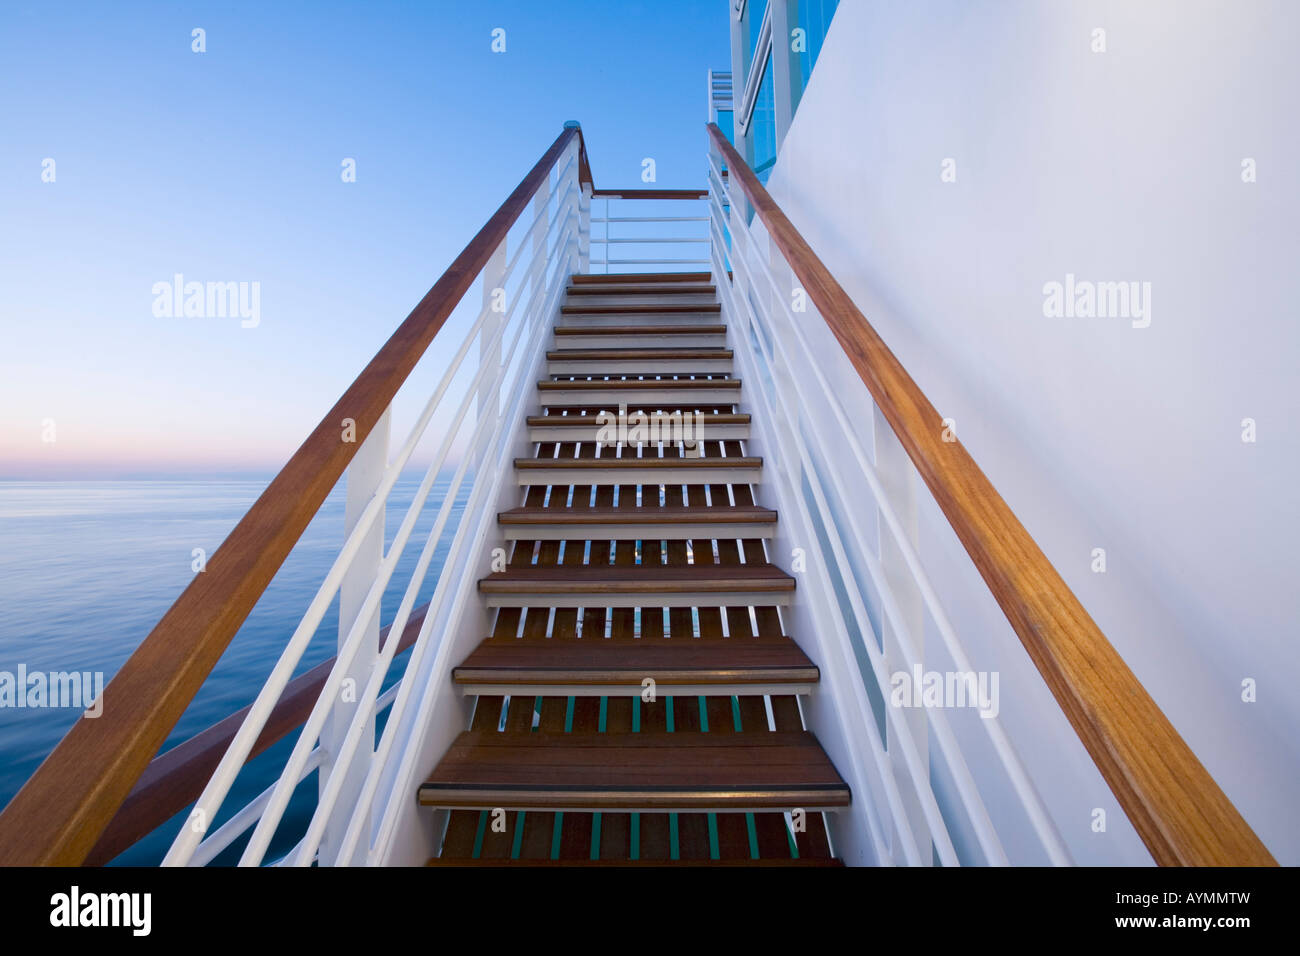 Steps on a Cruise Ship - Stock Image